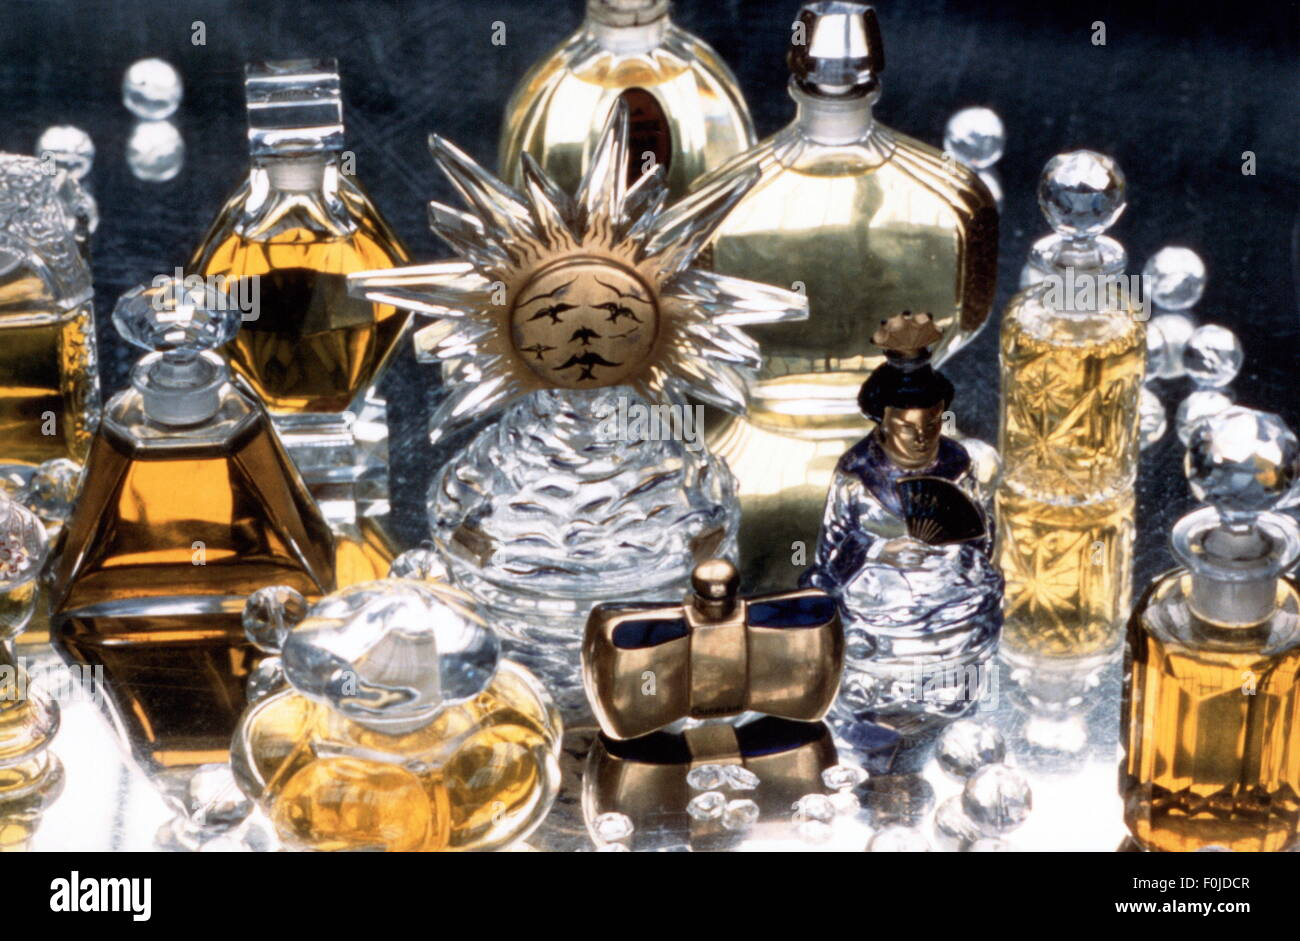 cosmetics, perfume, Baccarat cristal flacon, 1930s, , Additional-Rights-Clearences-NA - Stock Image